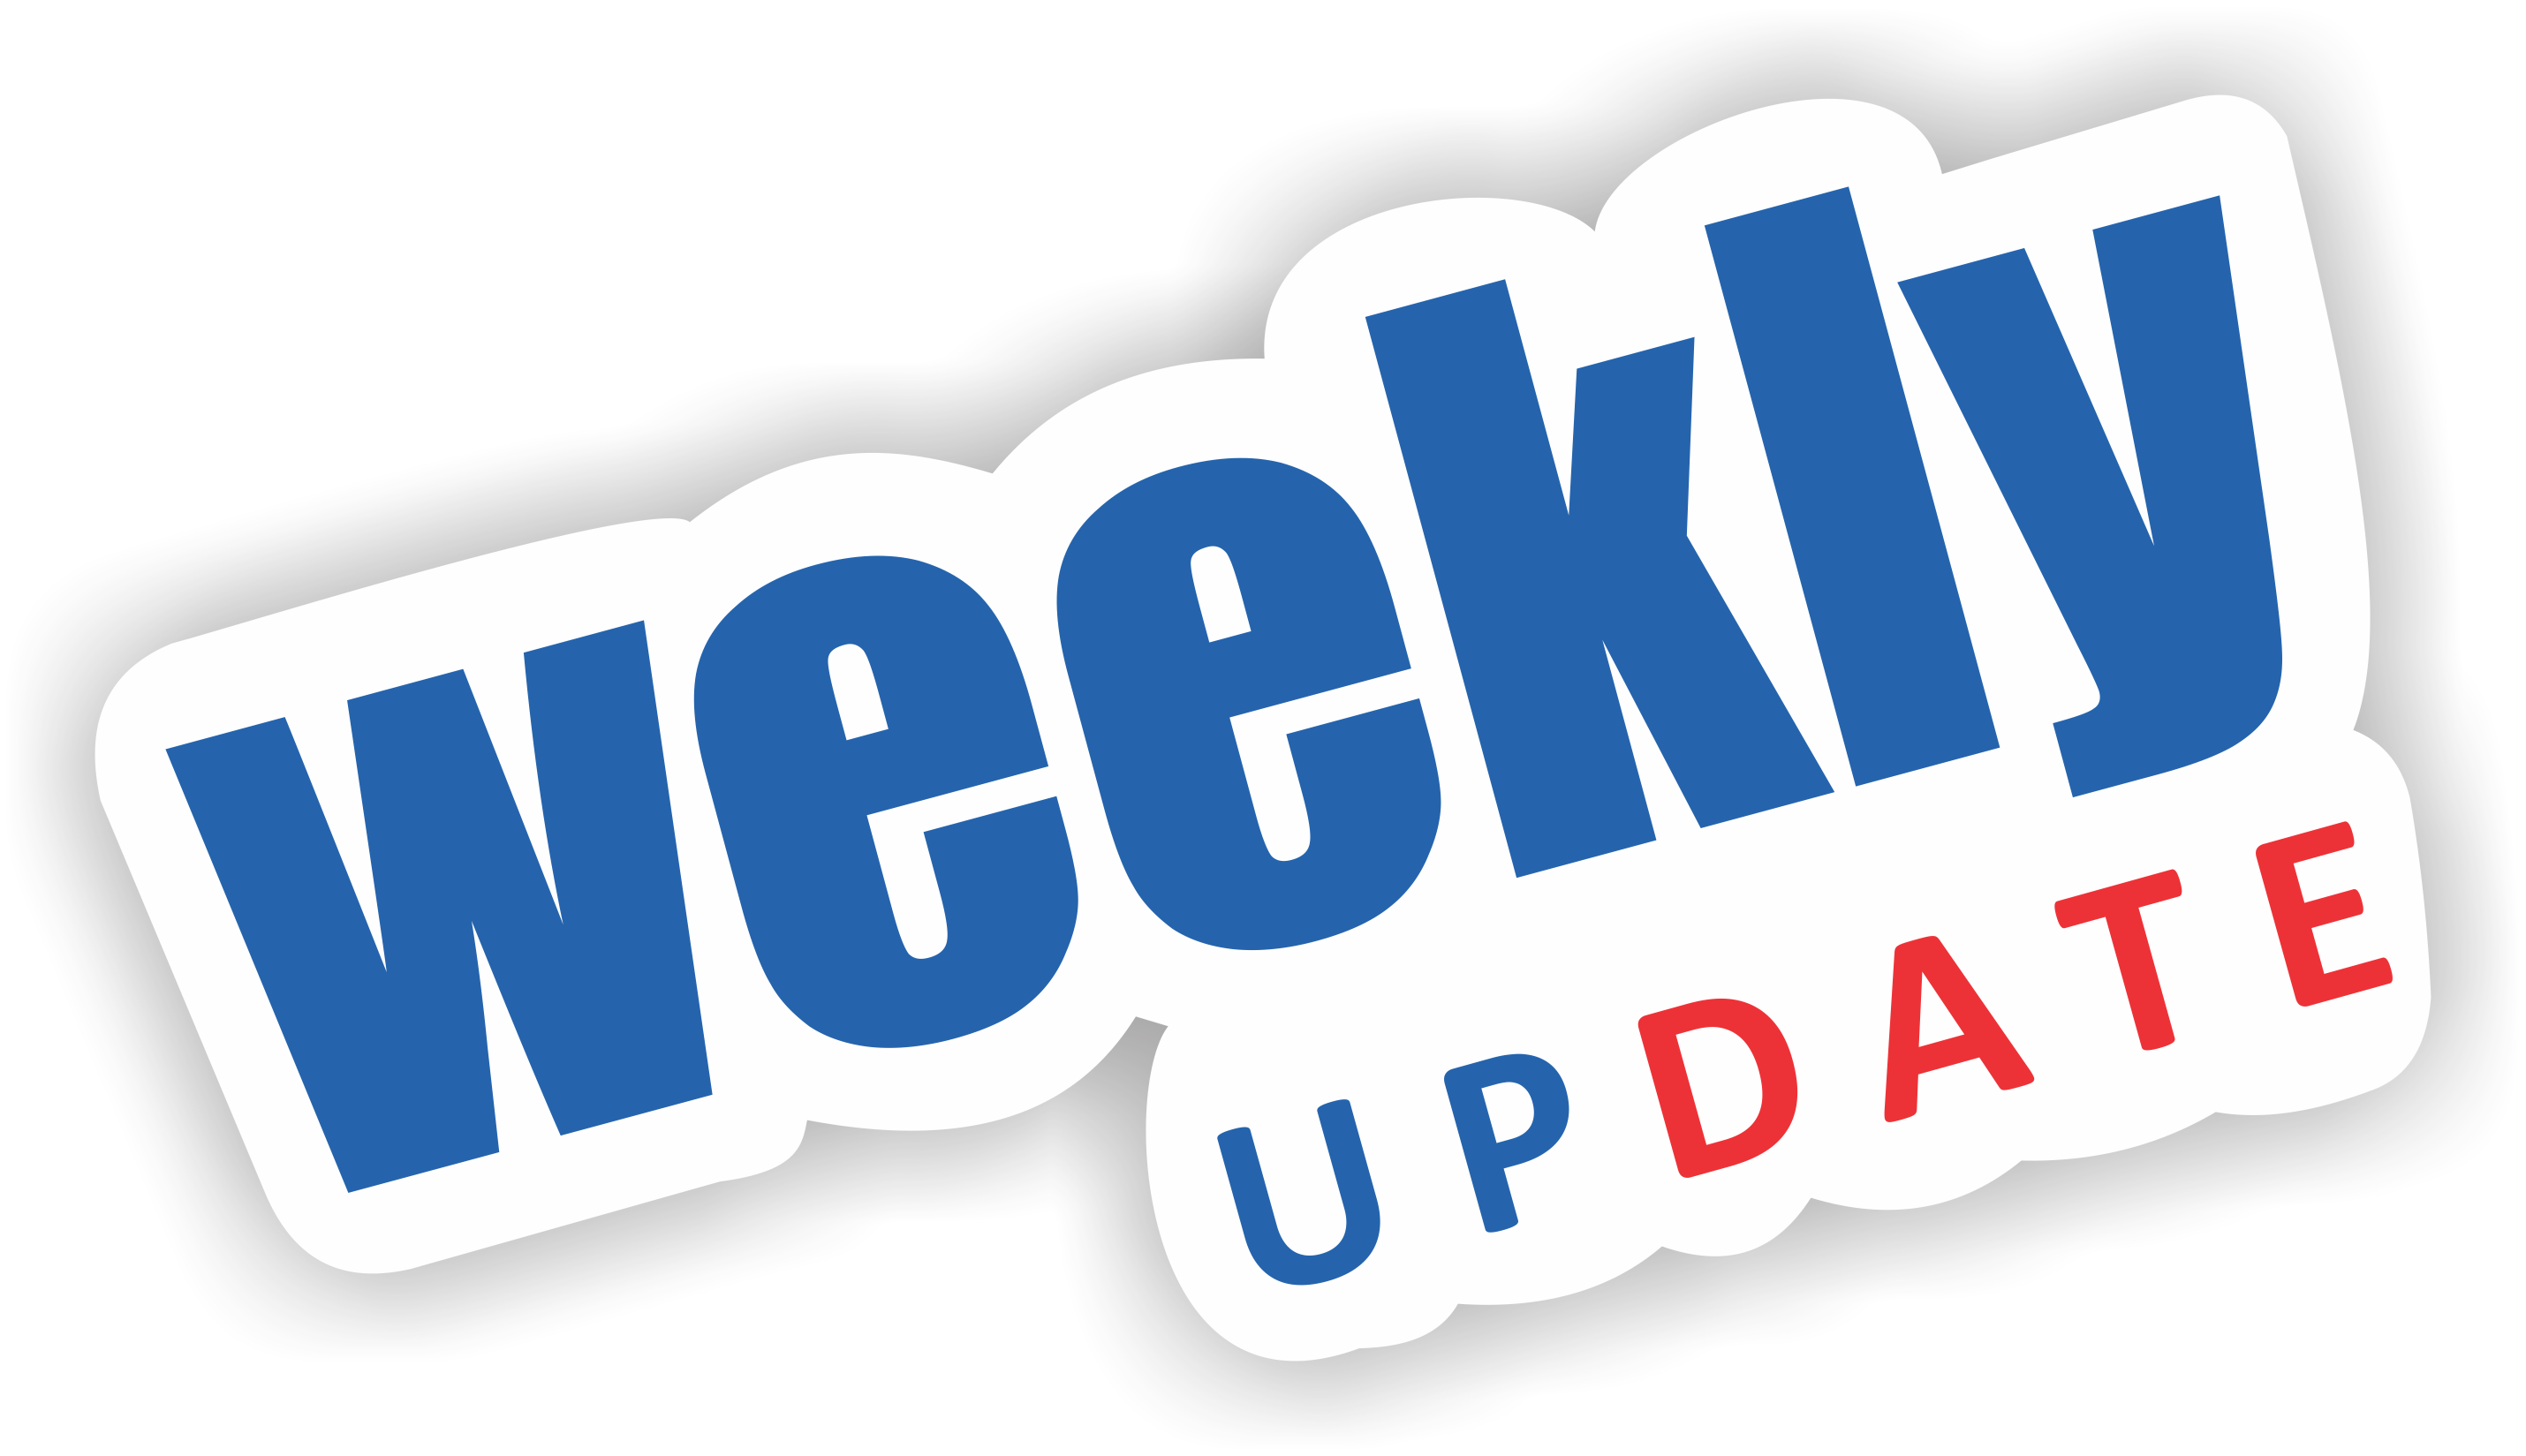 Test clipart weekly. Update laveen view larger